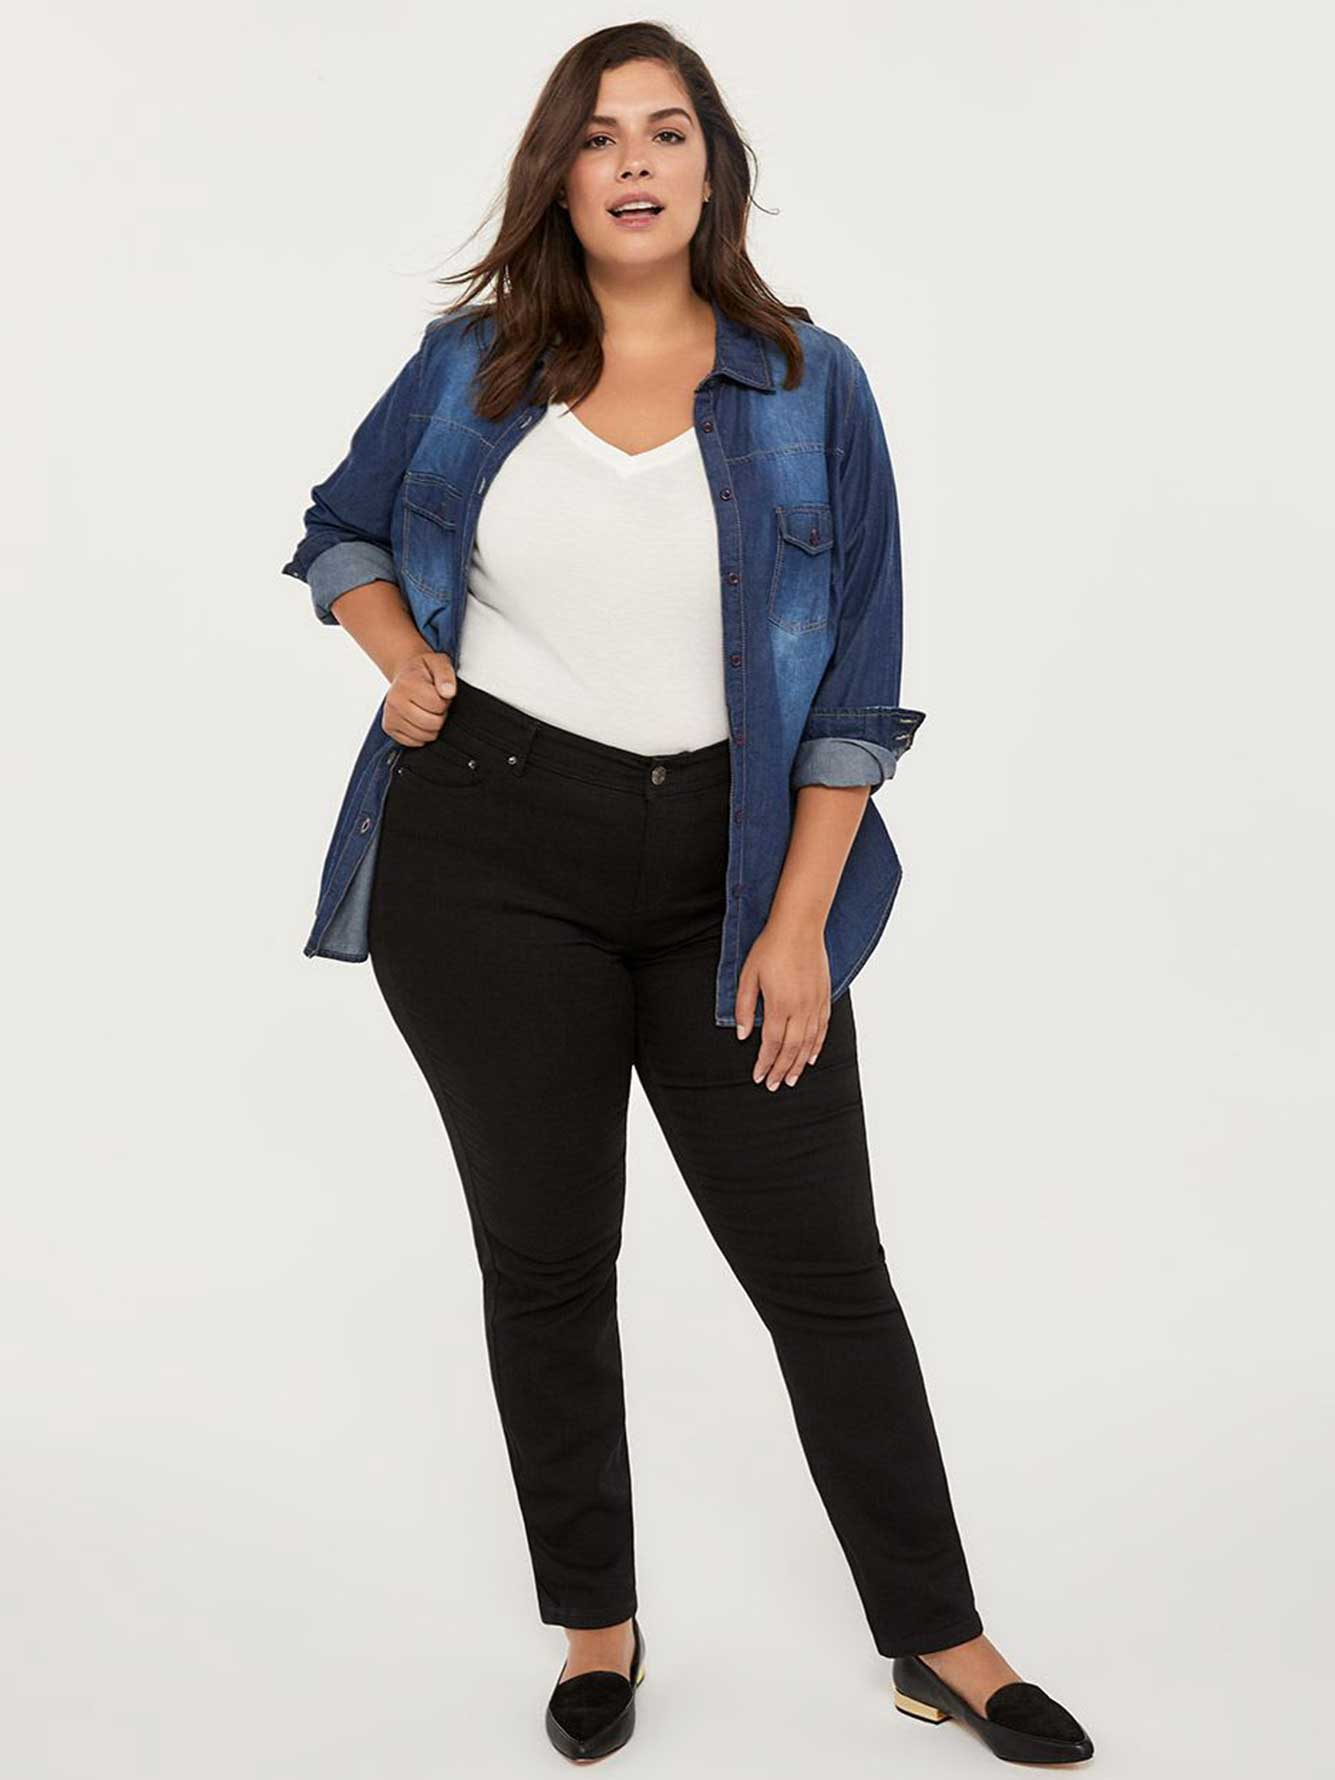 2e83c07b48c Petite Slightly Curvy Fit Straight Leg Black Jean - d C JEANS ...